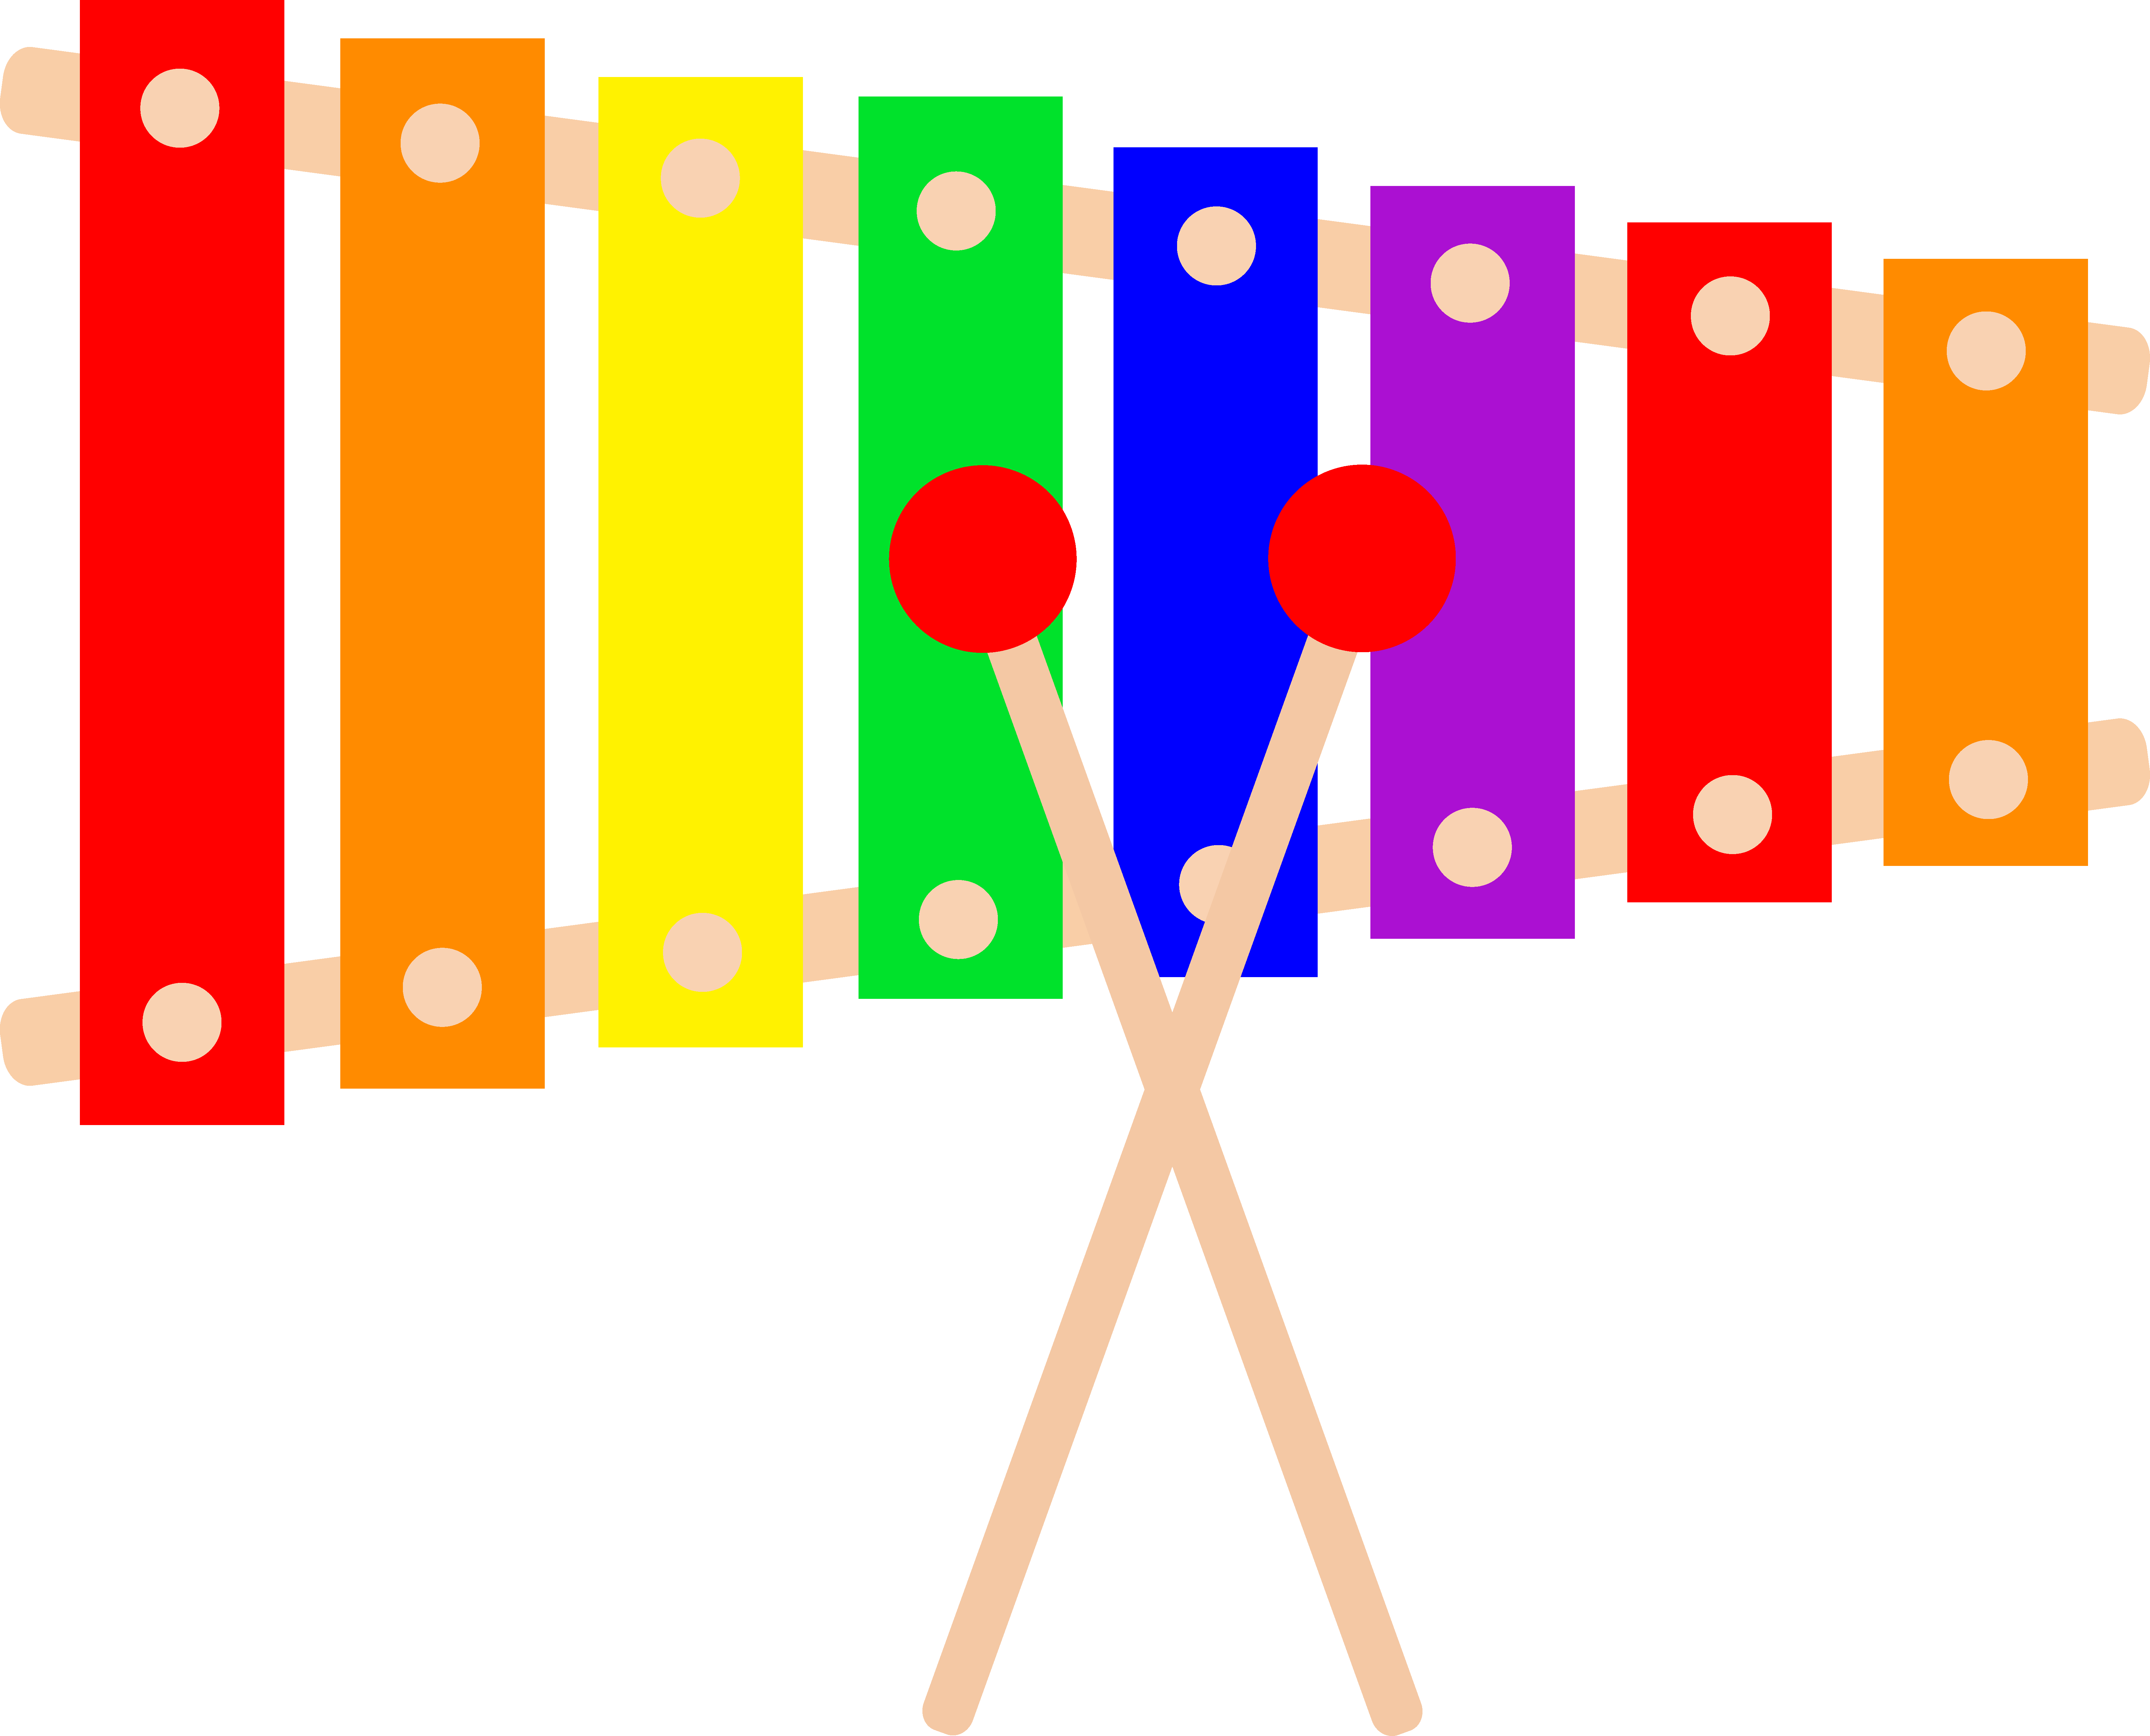 xylophone drawing instrument philippine